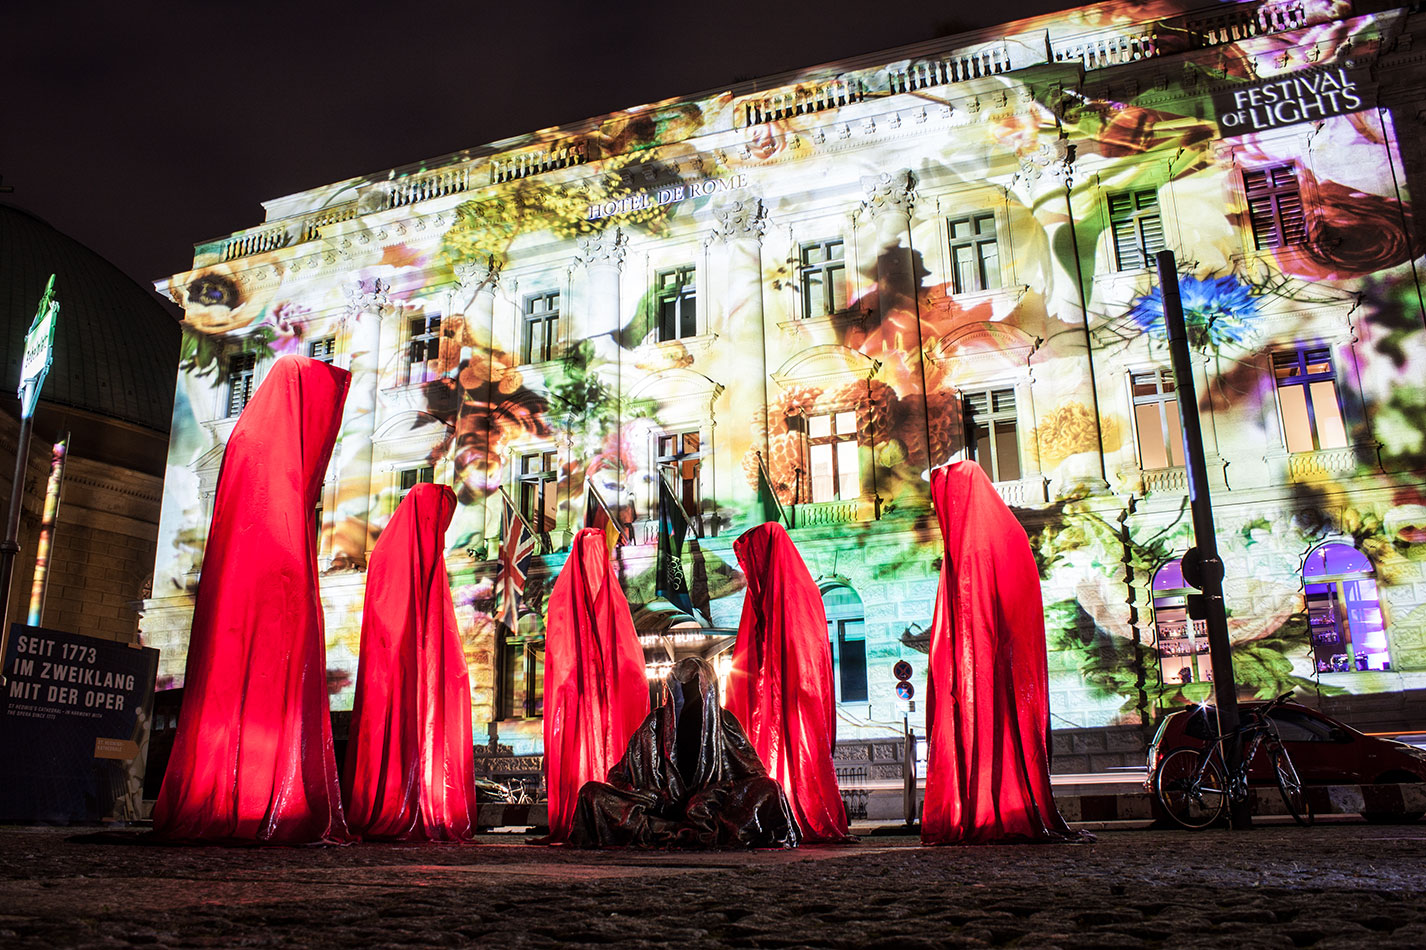 festival-of-lights-berlin-hotel-de-rome-light-art-show-exhibition-lumina-guardians-of-time-manfred-kili-kielnhofer-contemporary-arts-design-sculpture-3375